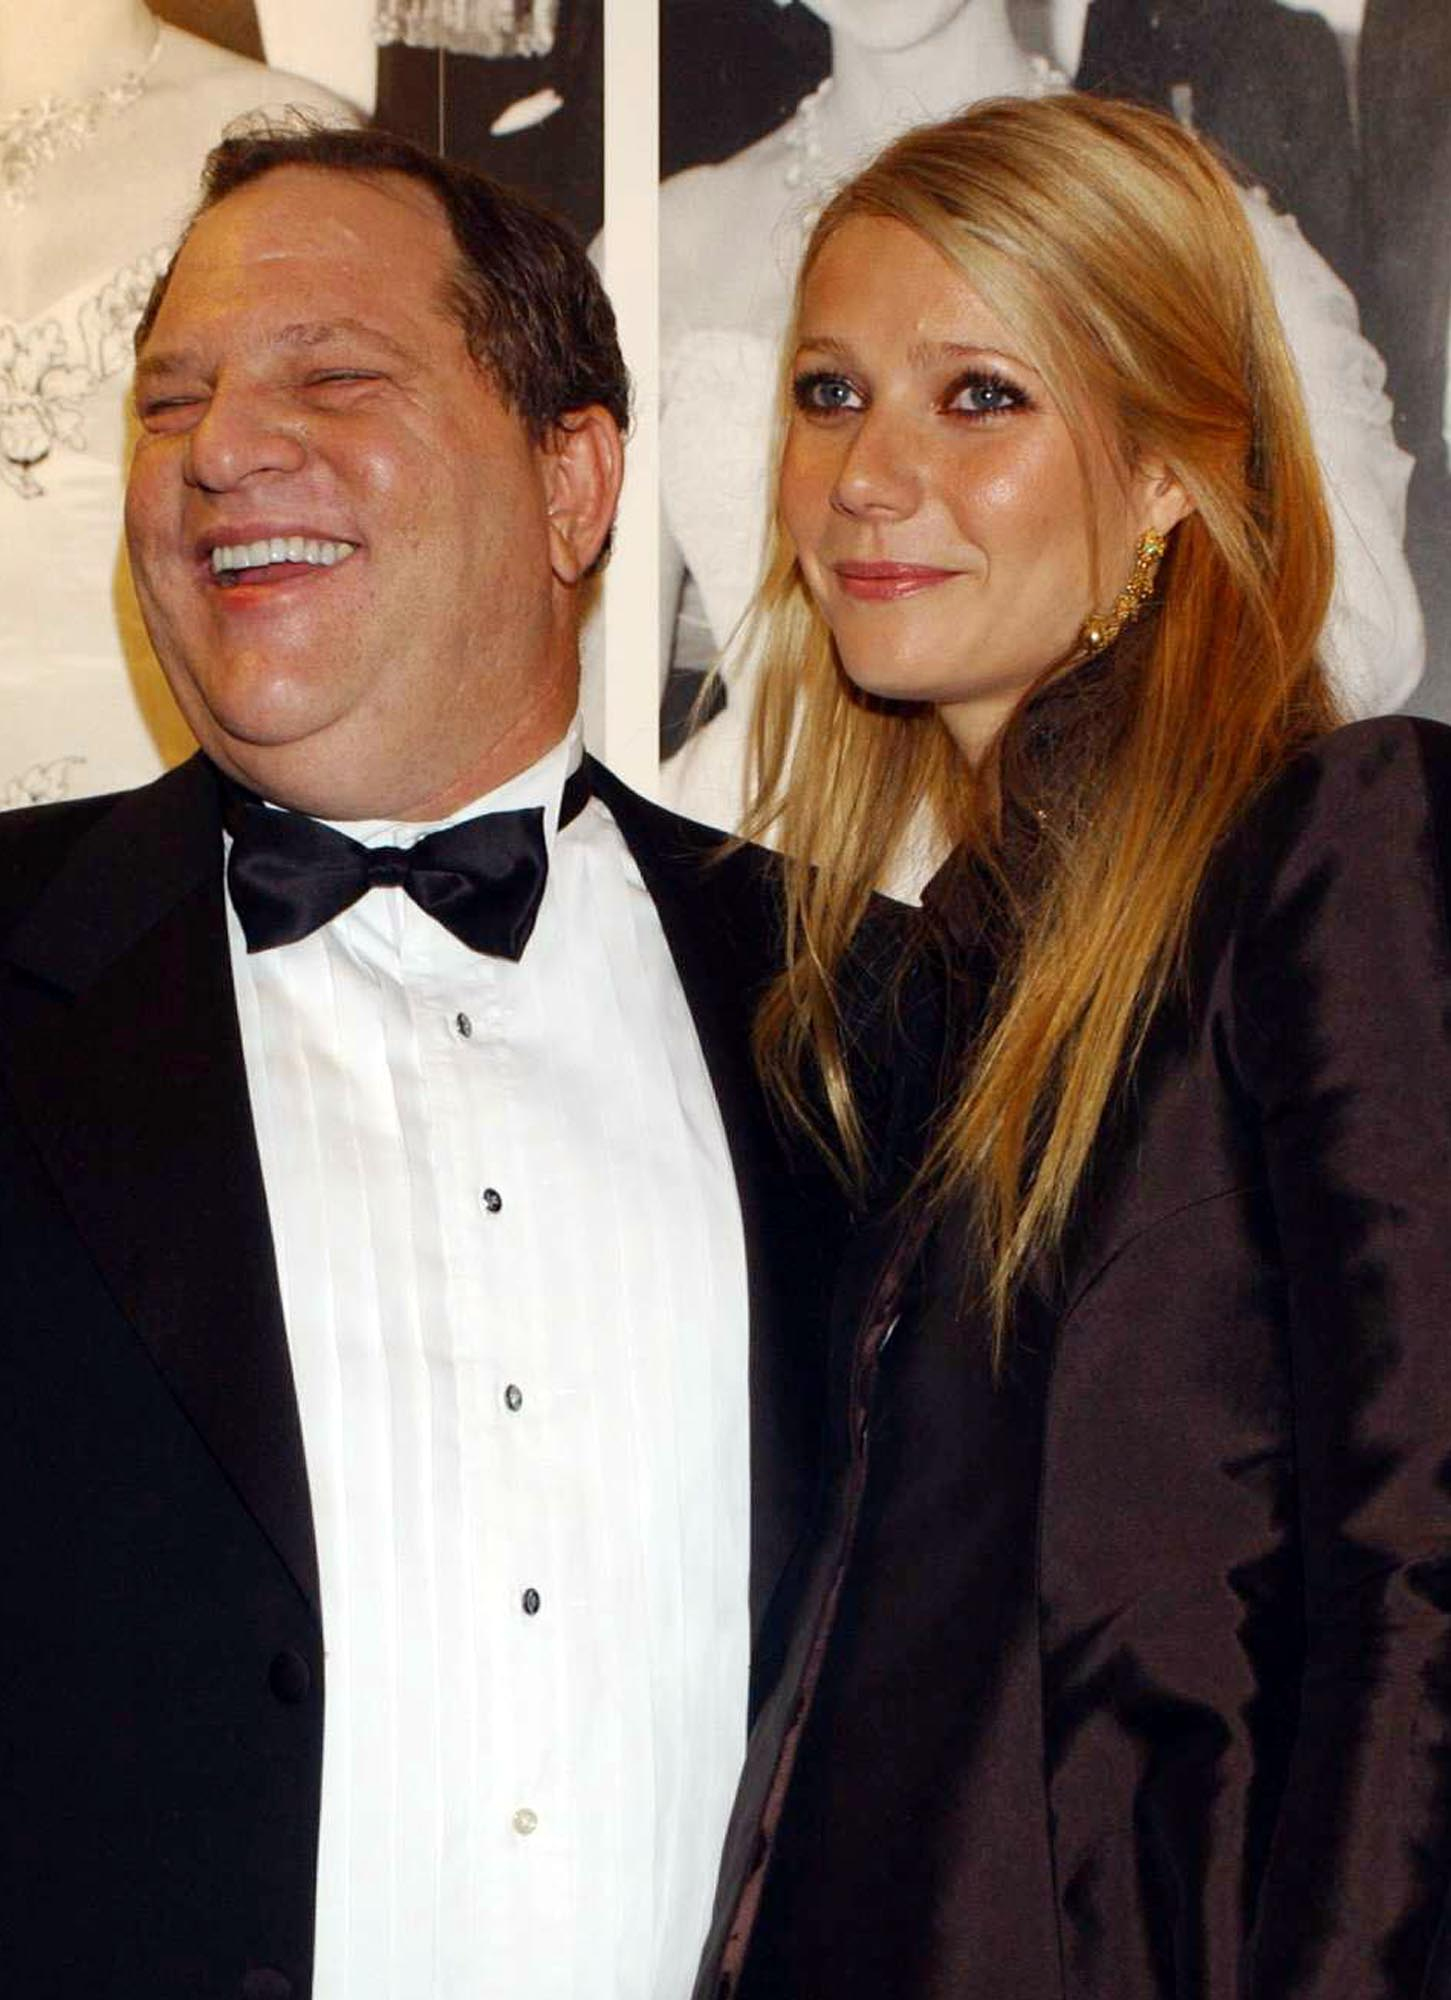 Harvey Weinstein Accused Of Rape By Actress In La As